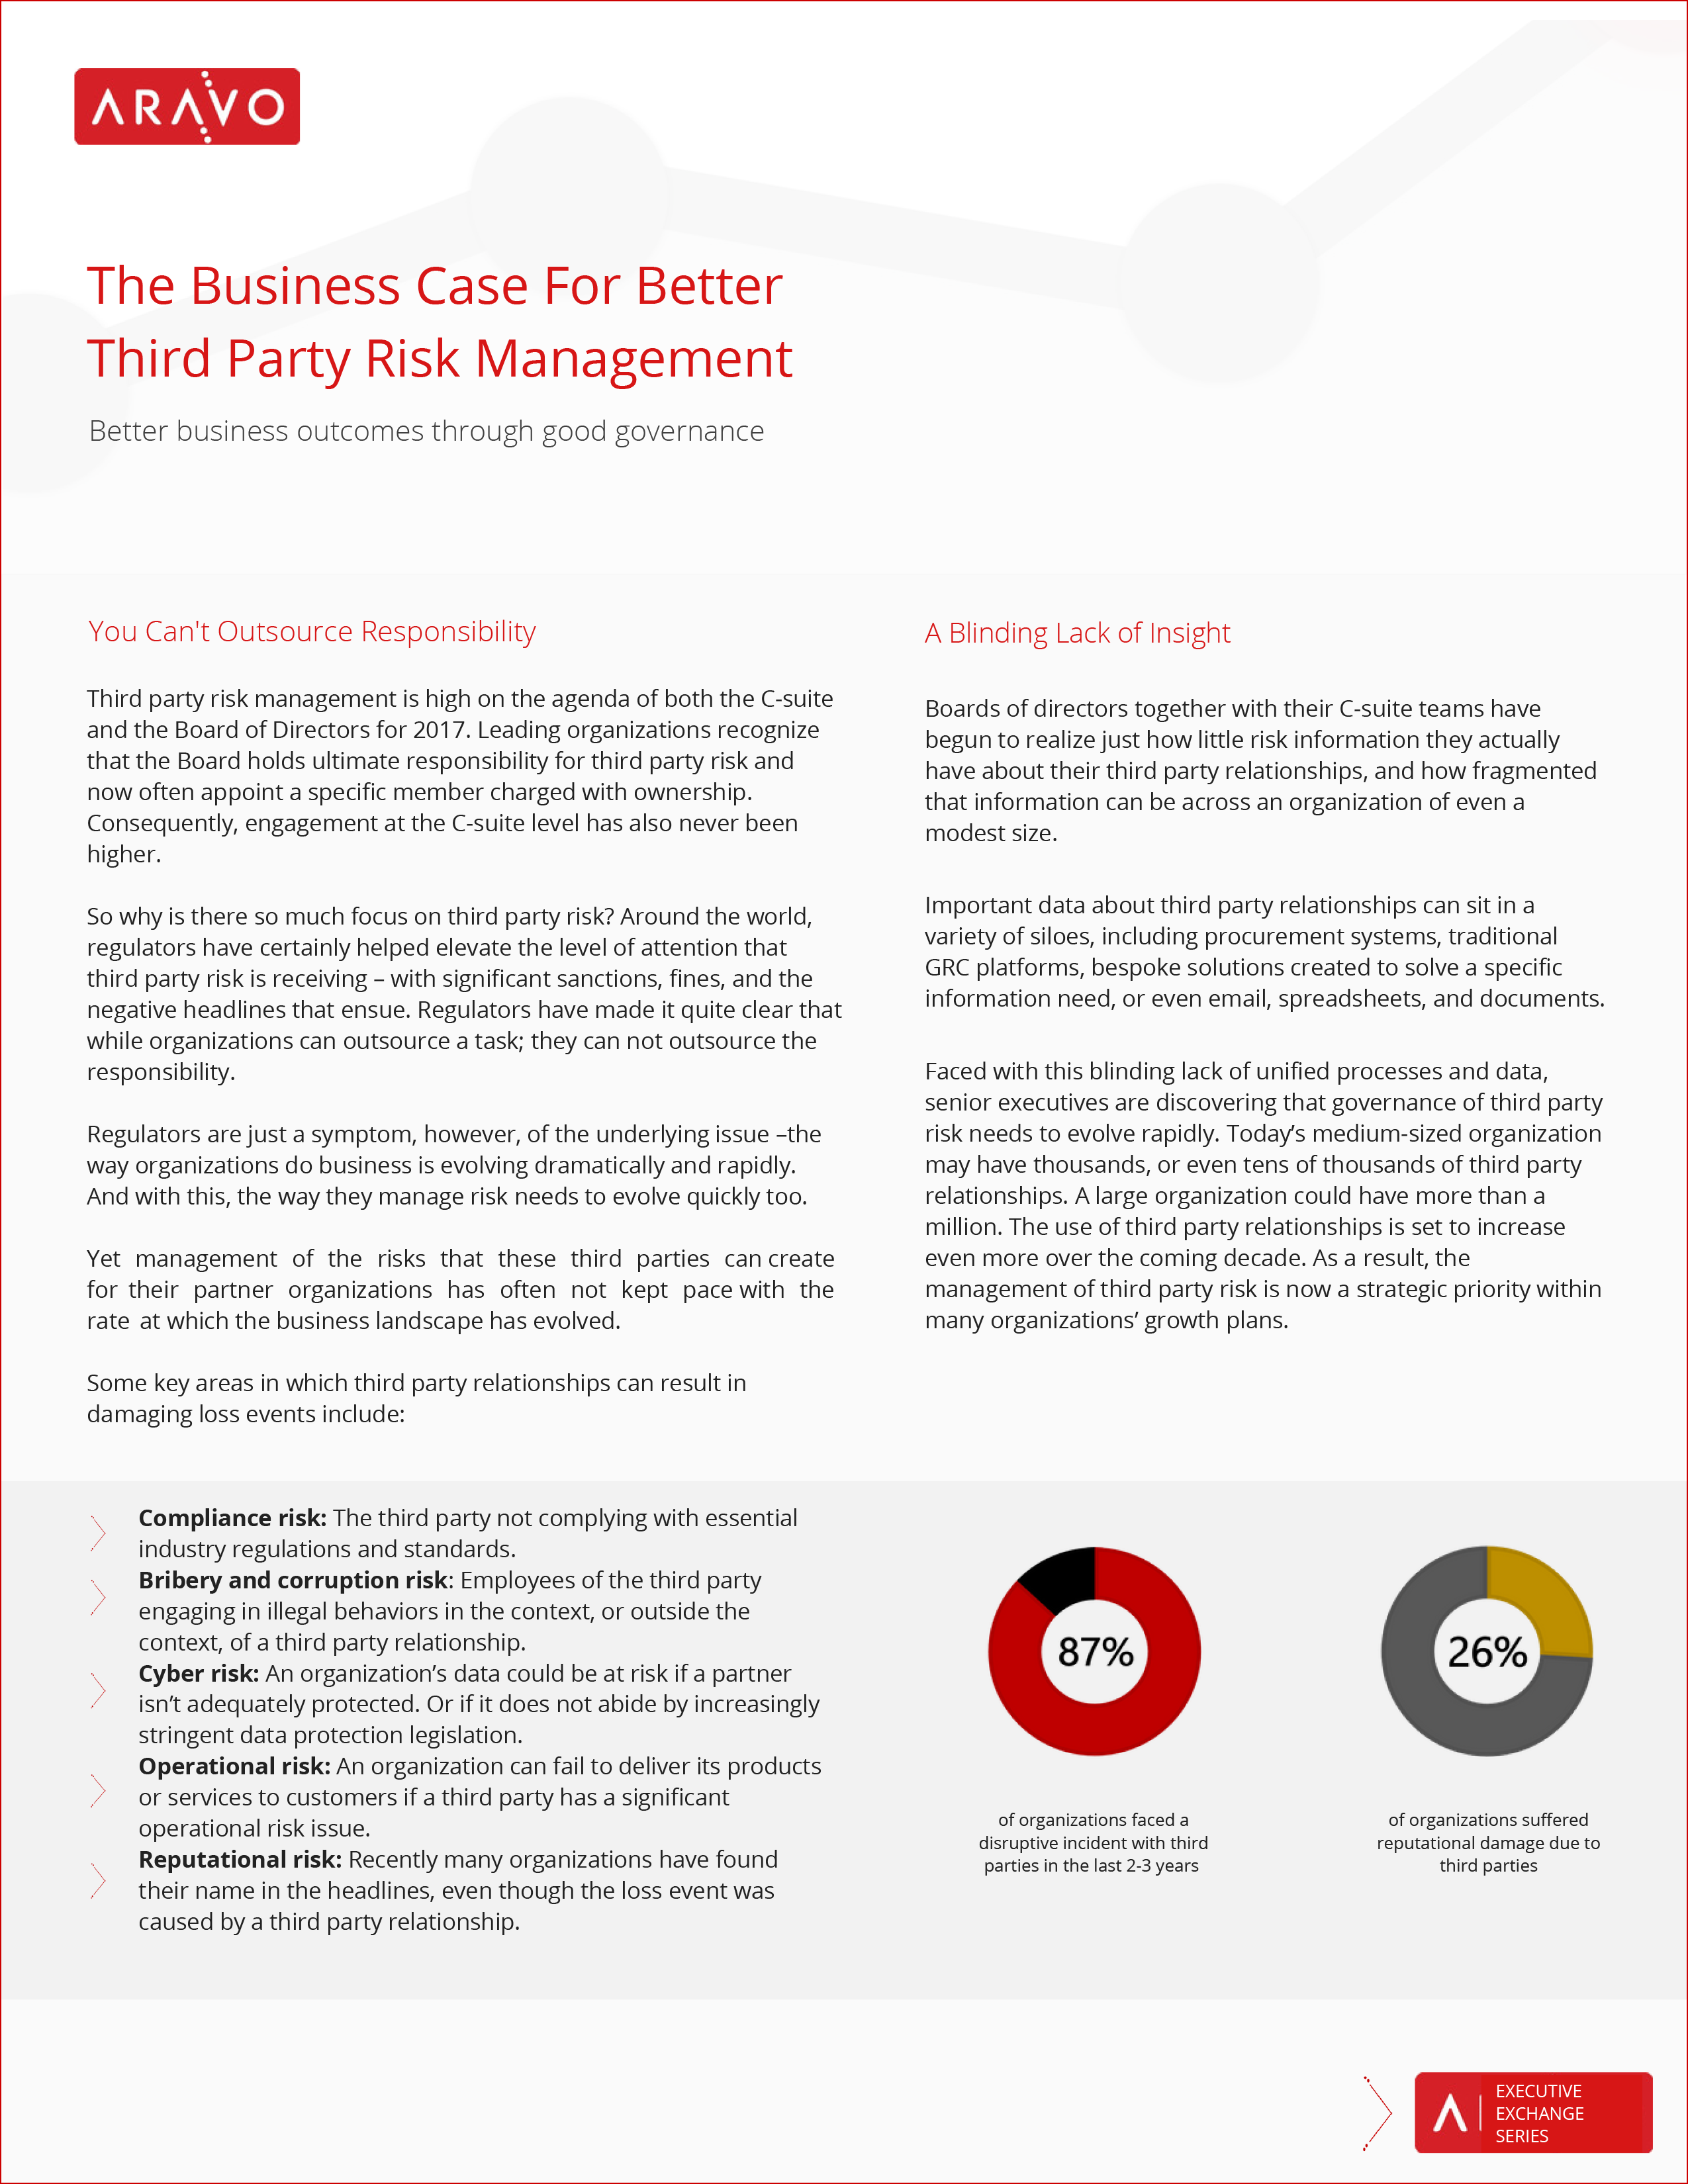 Aravo - The Business Case For Better Third Party Risk Management.png